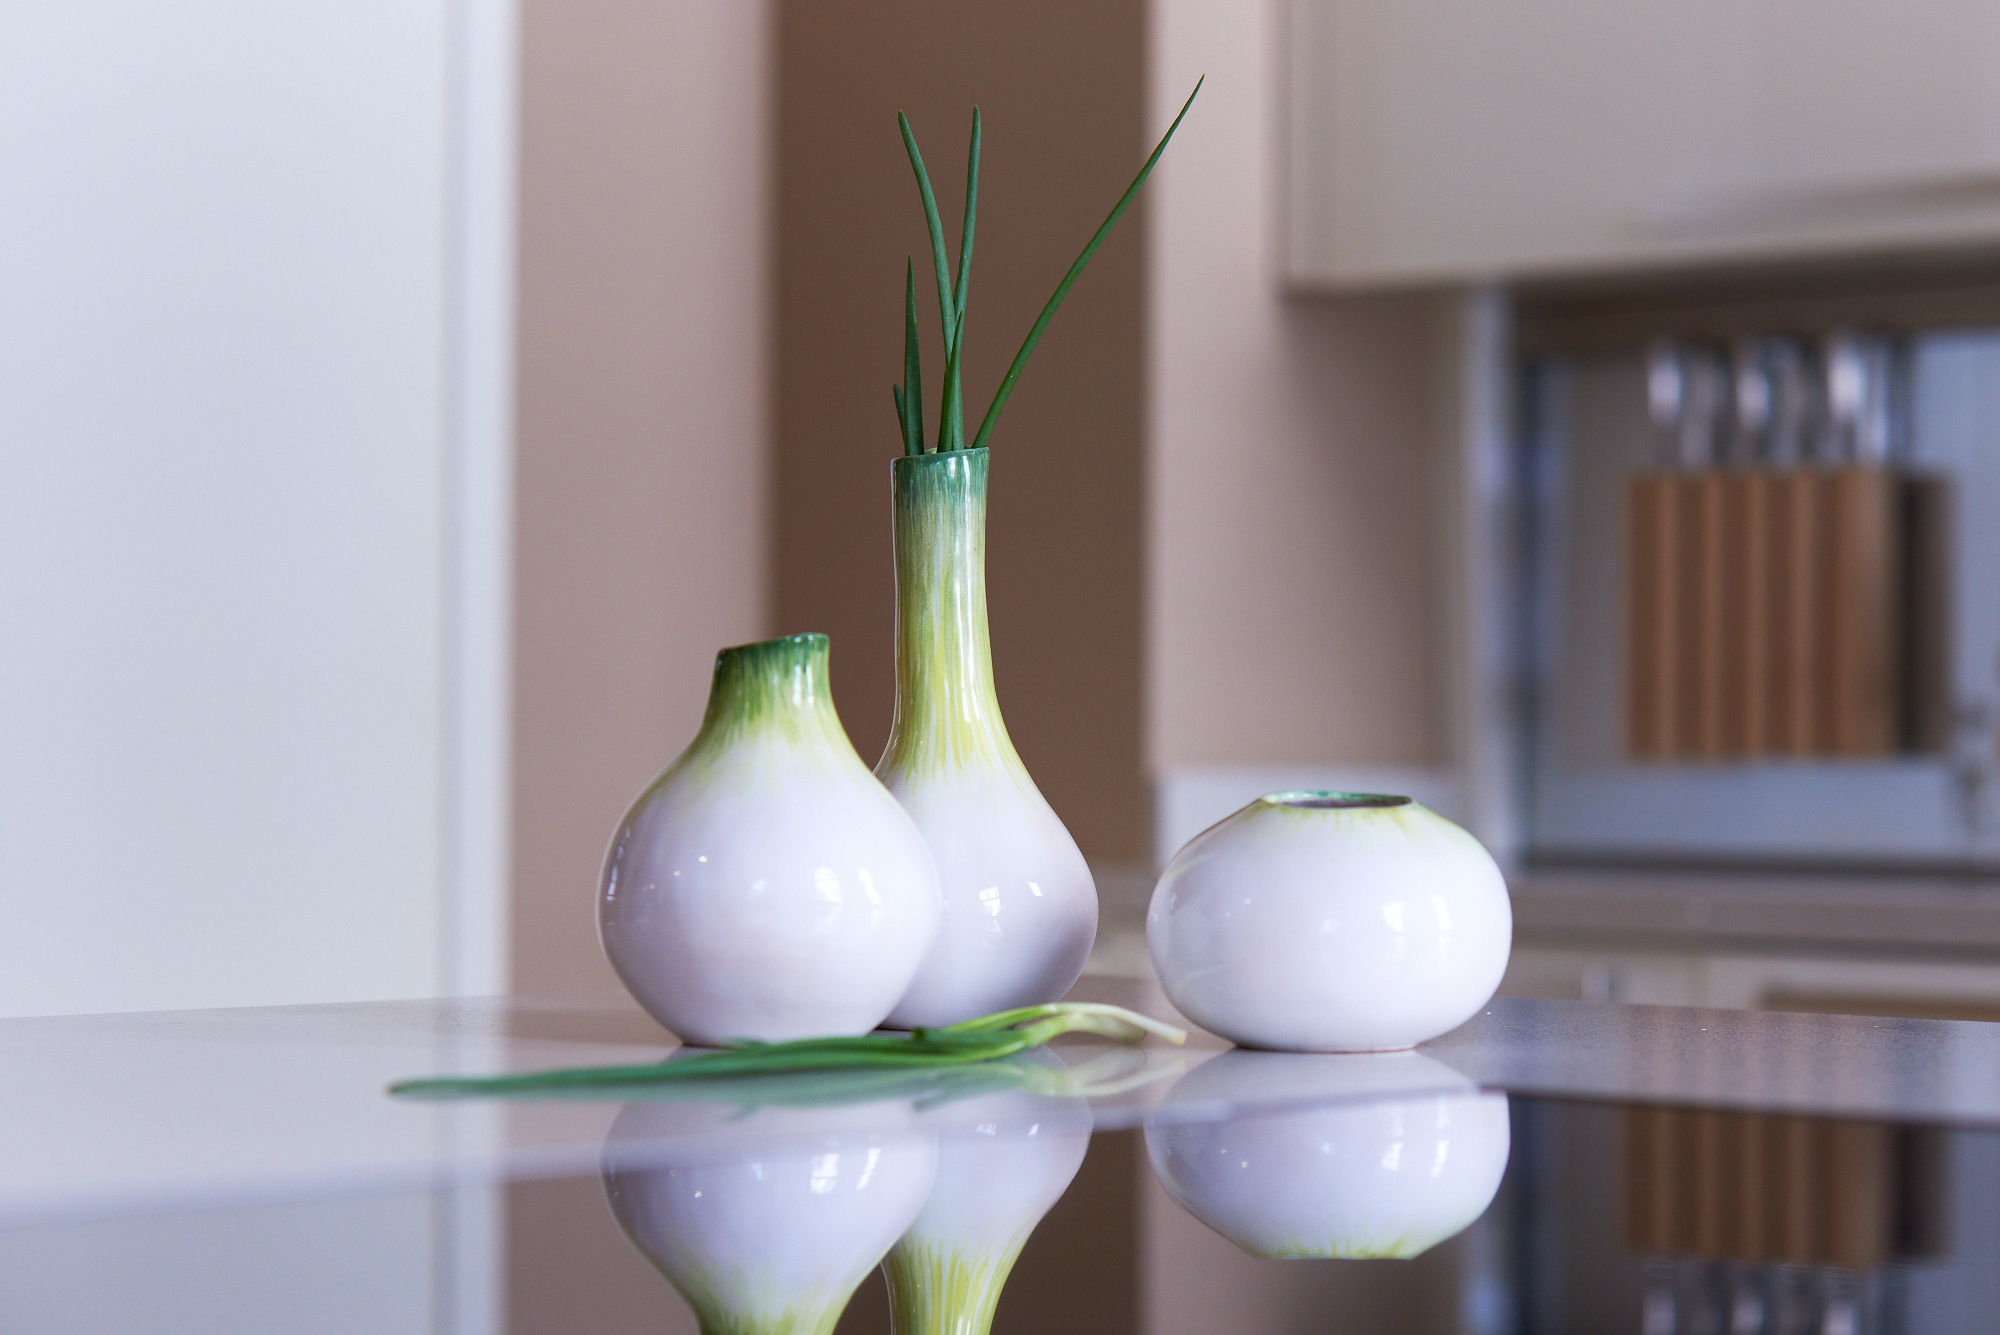 product_onion vases-Nastasia Amai (2)